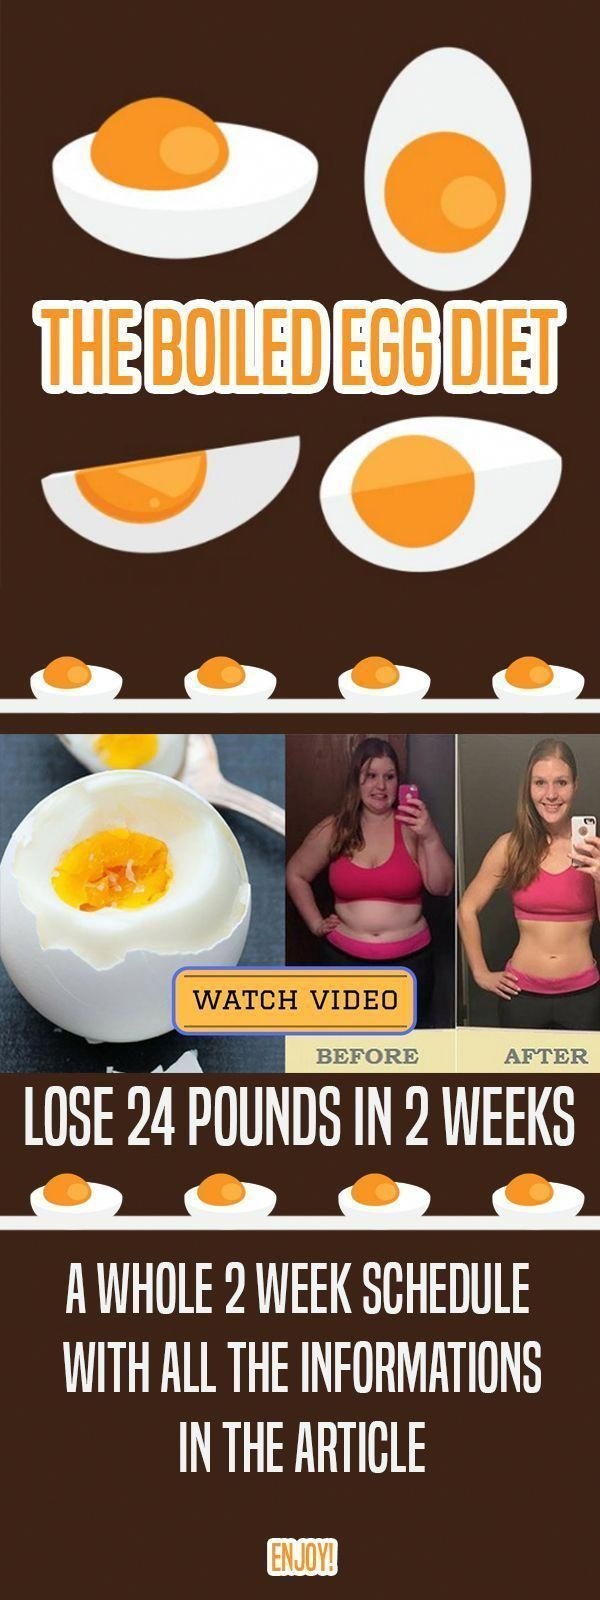 The Boiled Egg Diet ? Drop 24 Pounds In Just two Weeks #TheEggAndGrapefruitDiet #boiledeggnutrition The Boiled Egg Diet ? Drop 24 Pounds In Just two Weeks #TheEggAndGrapefruitDiet #boiledeggnutrition The Boiled Egg Diet ? Drop 24 Pounds In Just two Weeks #TheEggAndGrapefruitDiet #boiledeggnutrition The Boiled Egg Diet ? Drop 24 Pounds In Just two Weeks #TheEggAndGrapefruitDiet #boiledeggnutrition